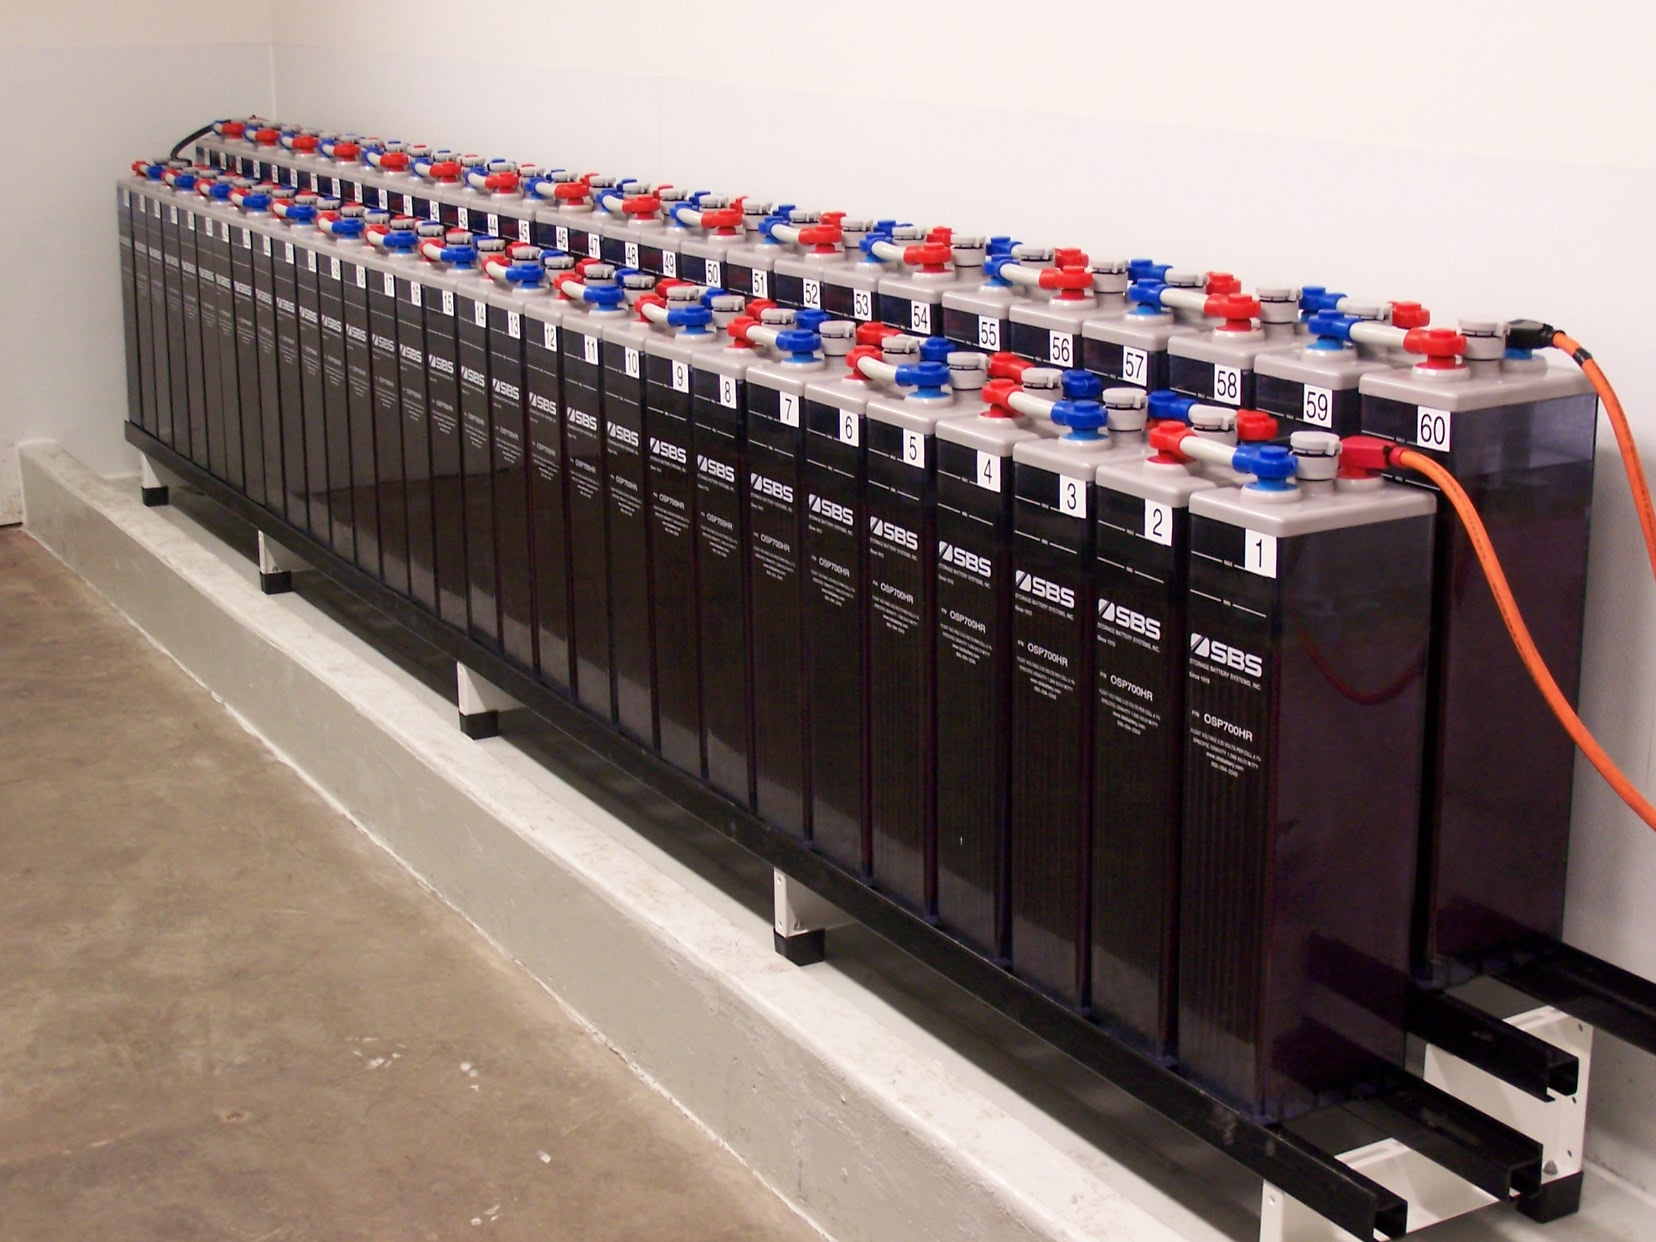 SBS - Enclusure, Battery Banks, Critial Power, OPzS Battery Bank, Substation Battery Bank, Utility Battery Bank, H2 - Hydrogen Detector